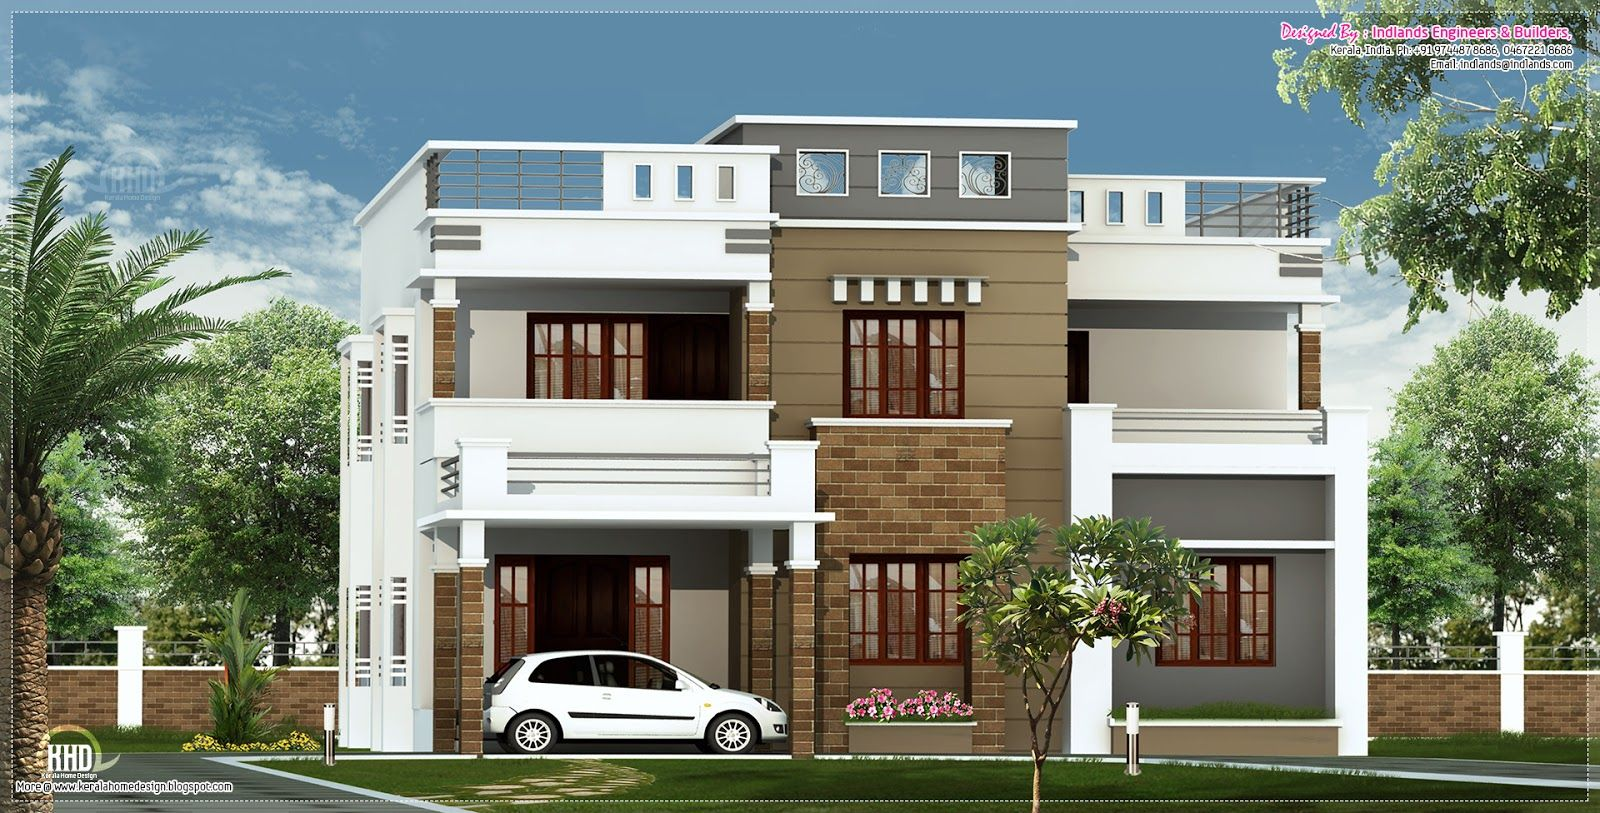 4 bedroom house with roof terrace plans google search for House elevation design